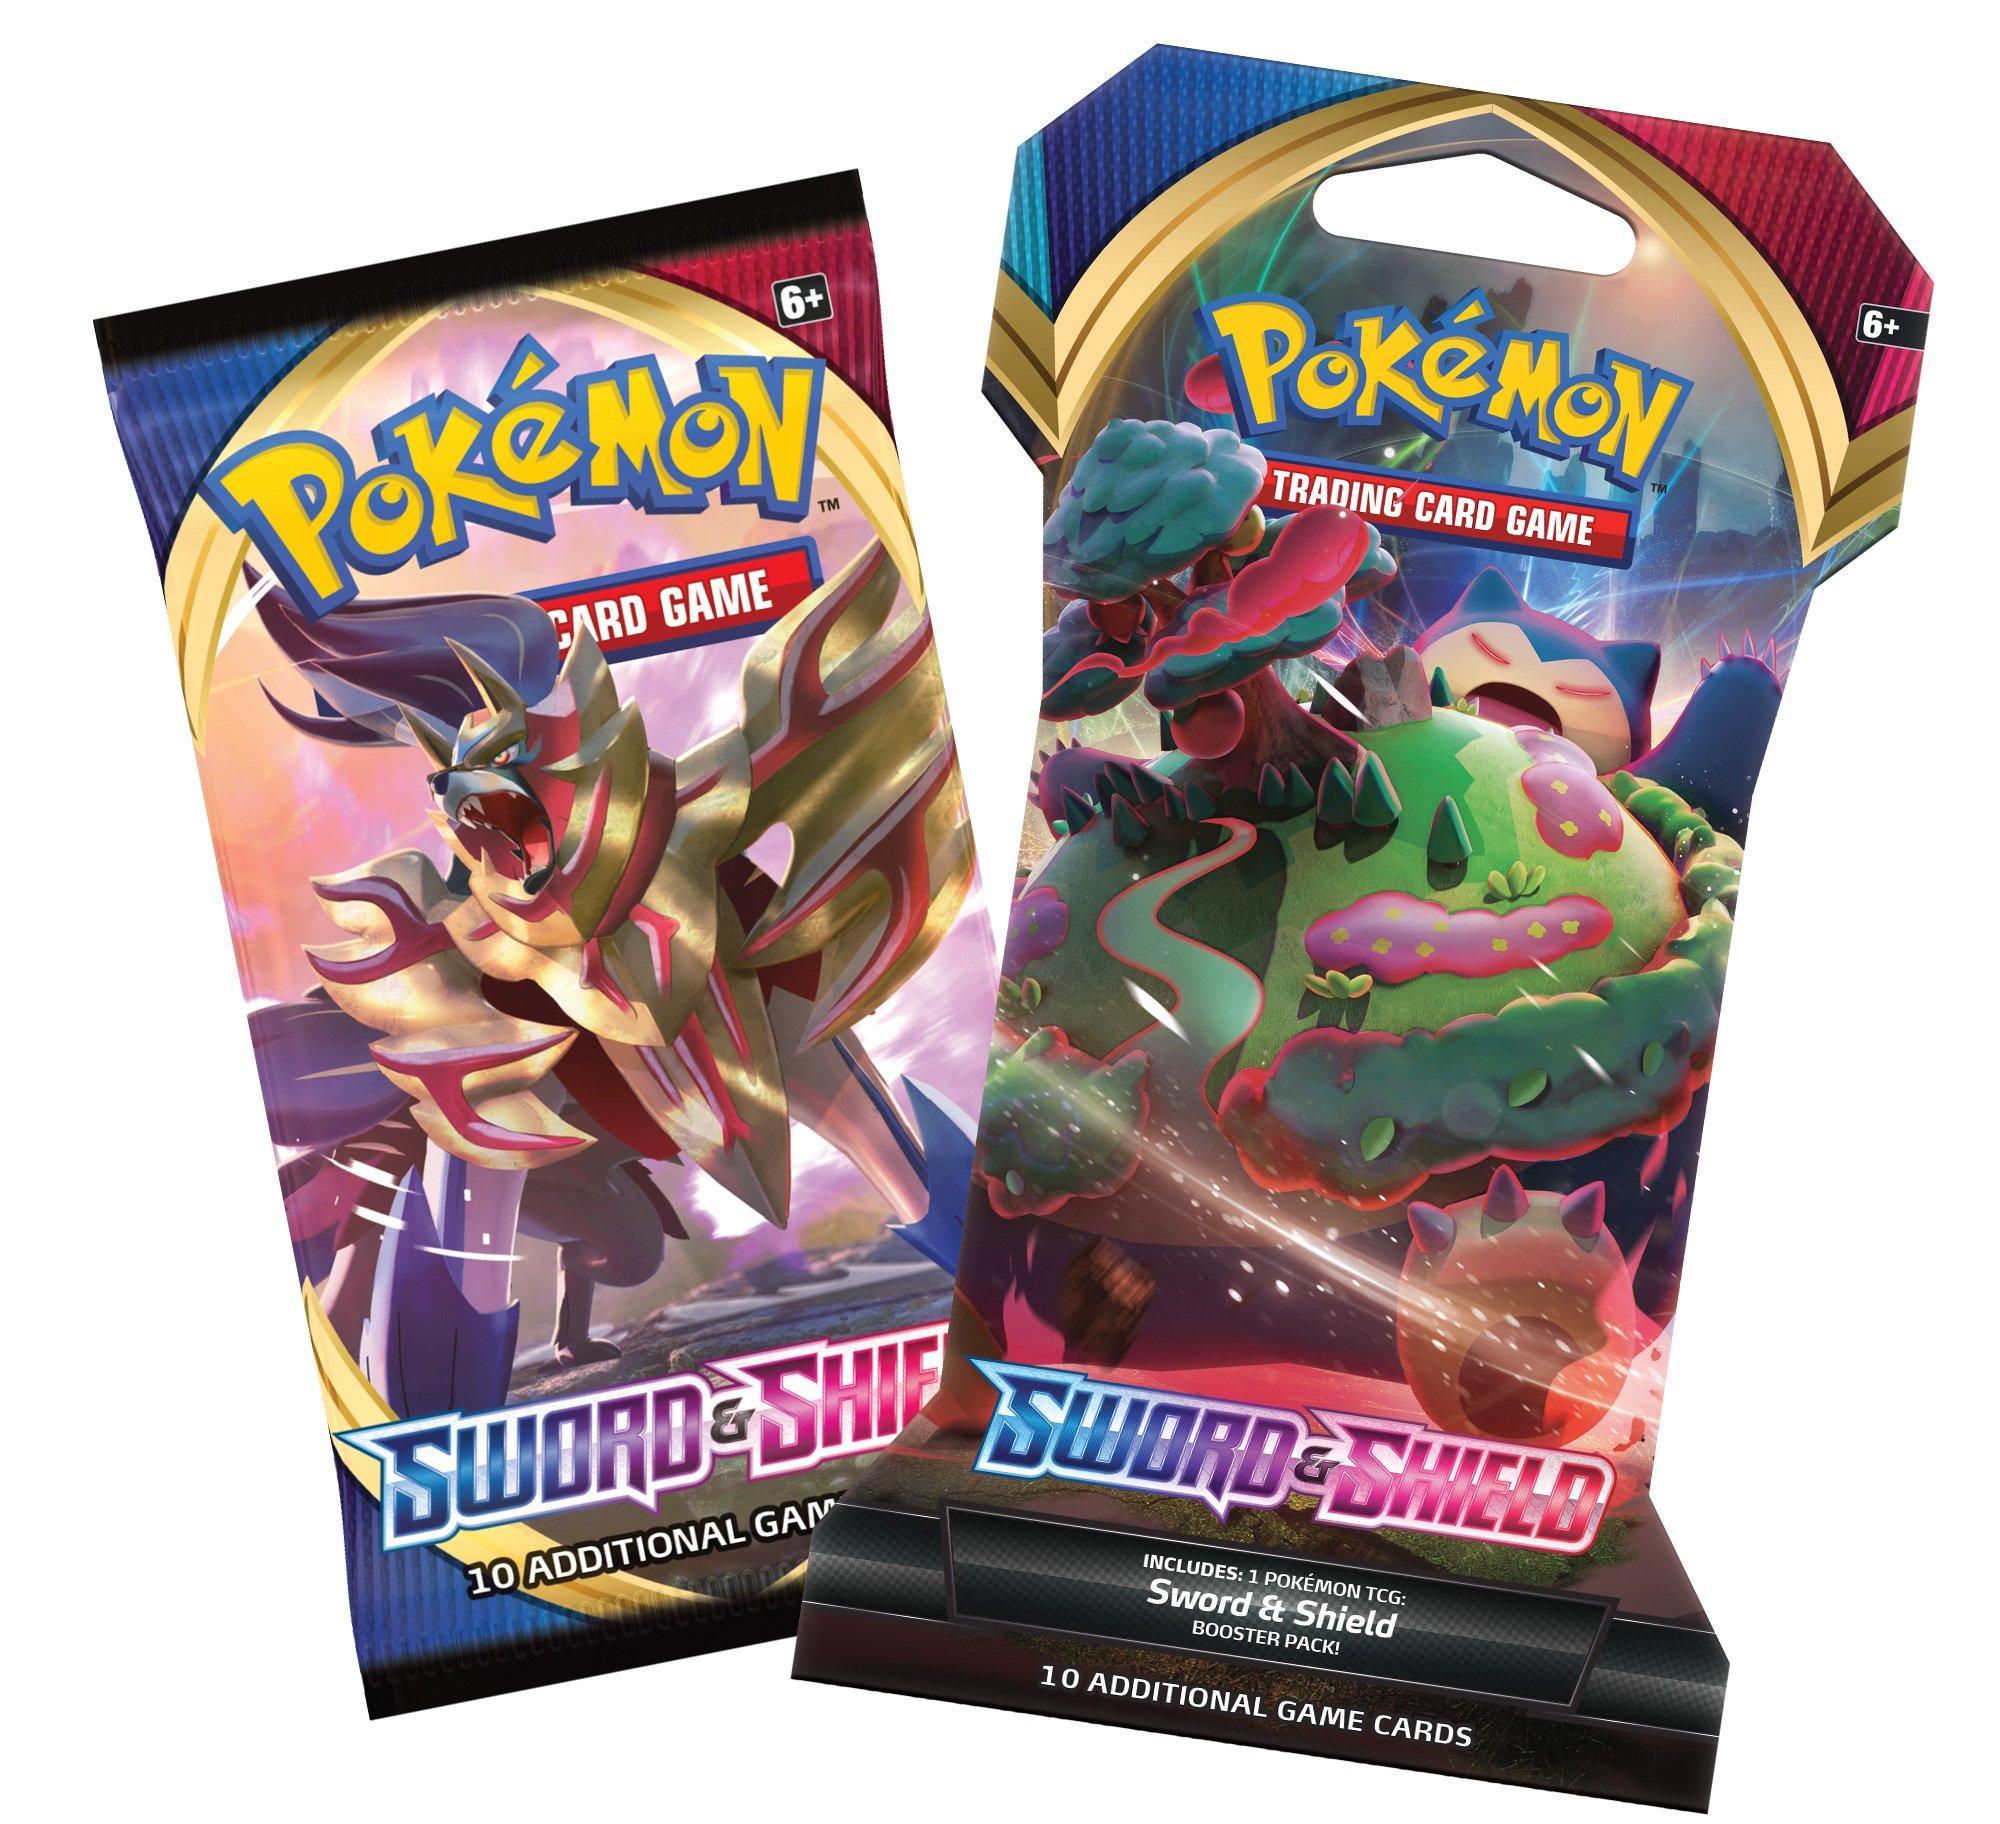 Pokemon Trading Card Game Sword And Shield Sleeved Booster Pack Gamestop